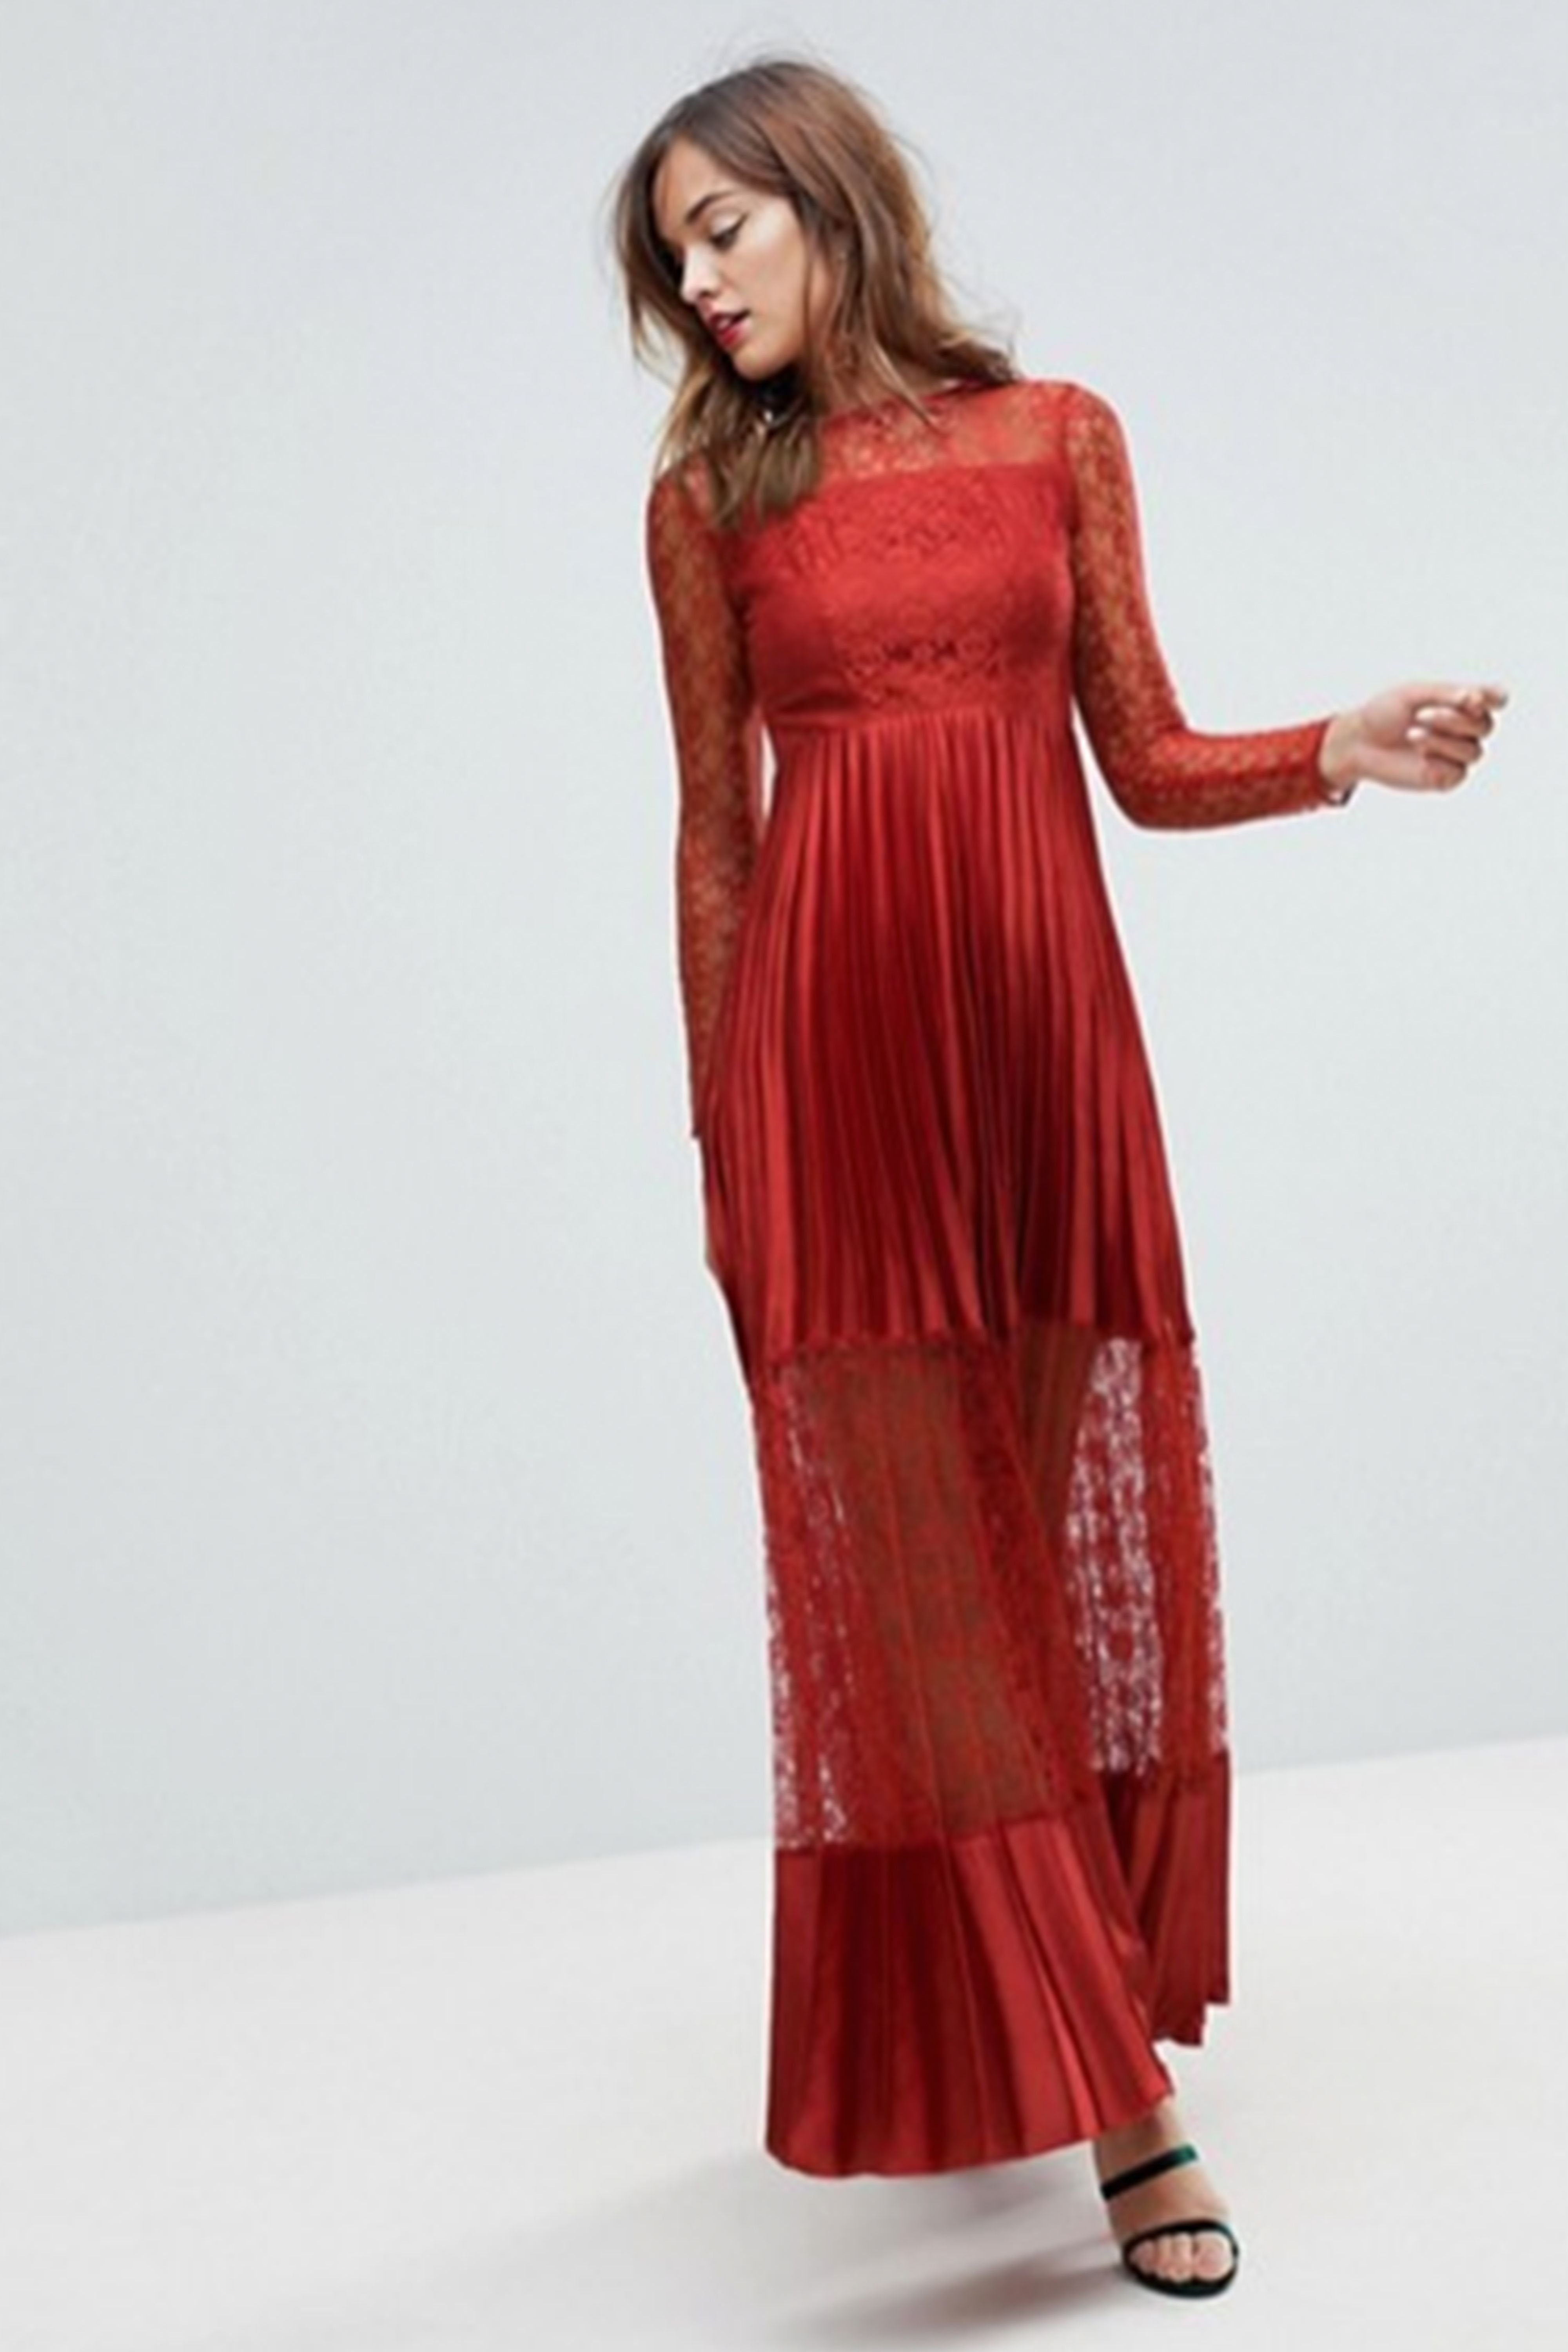 29 Best Red Prom Dresses For 2018 Bold Red Formal Dresses For Prom